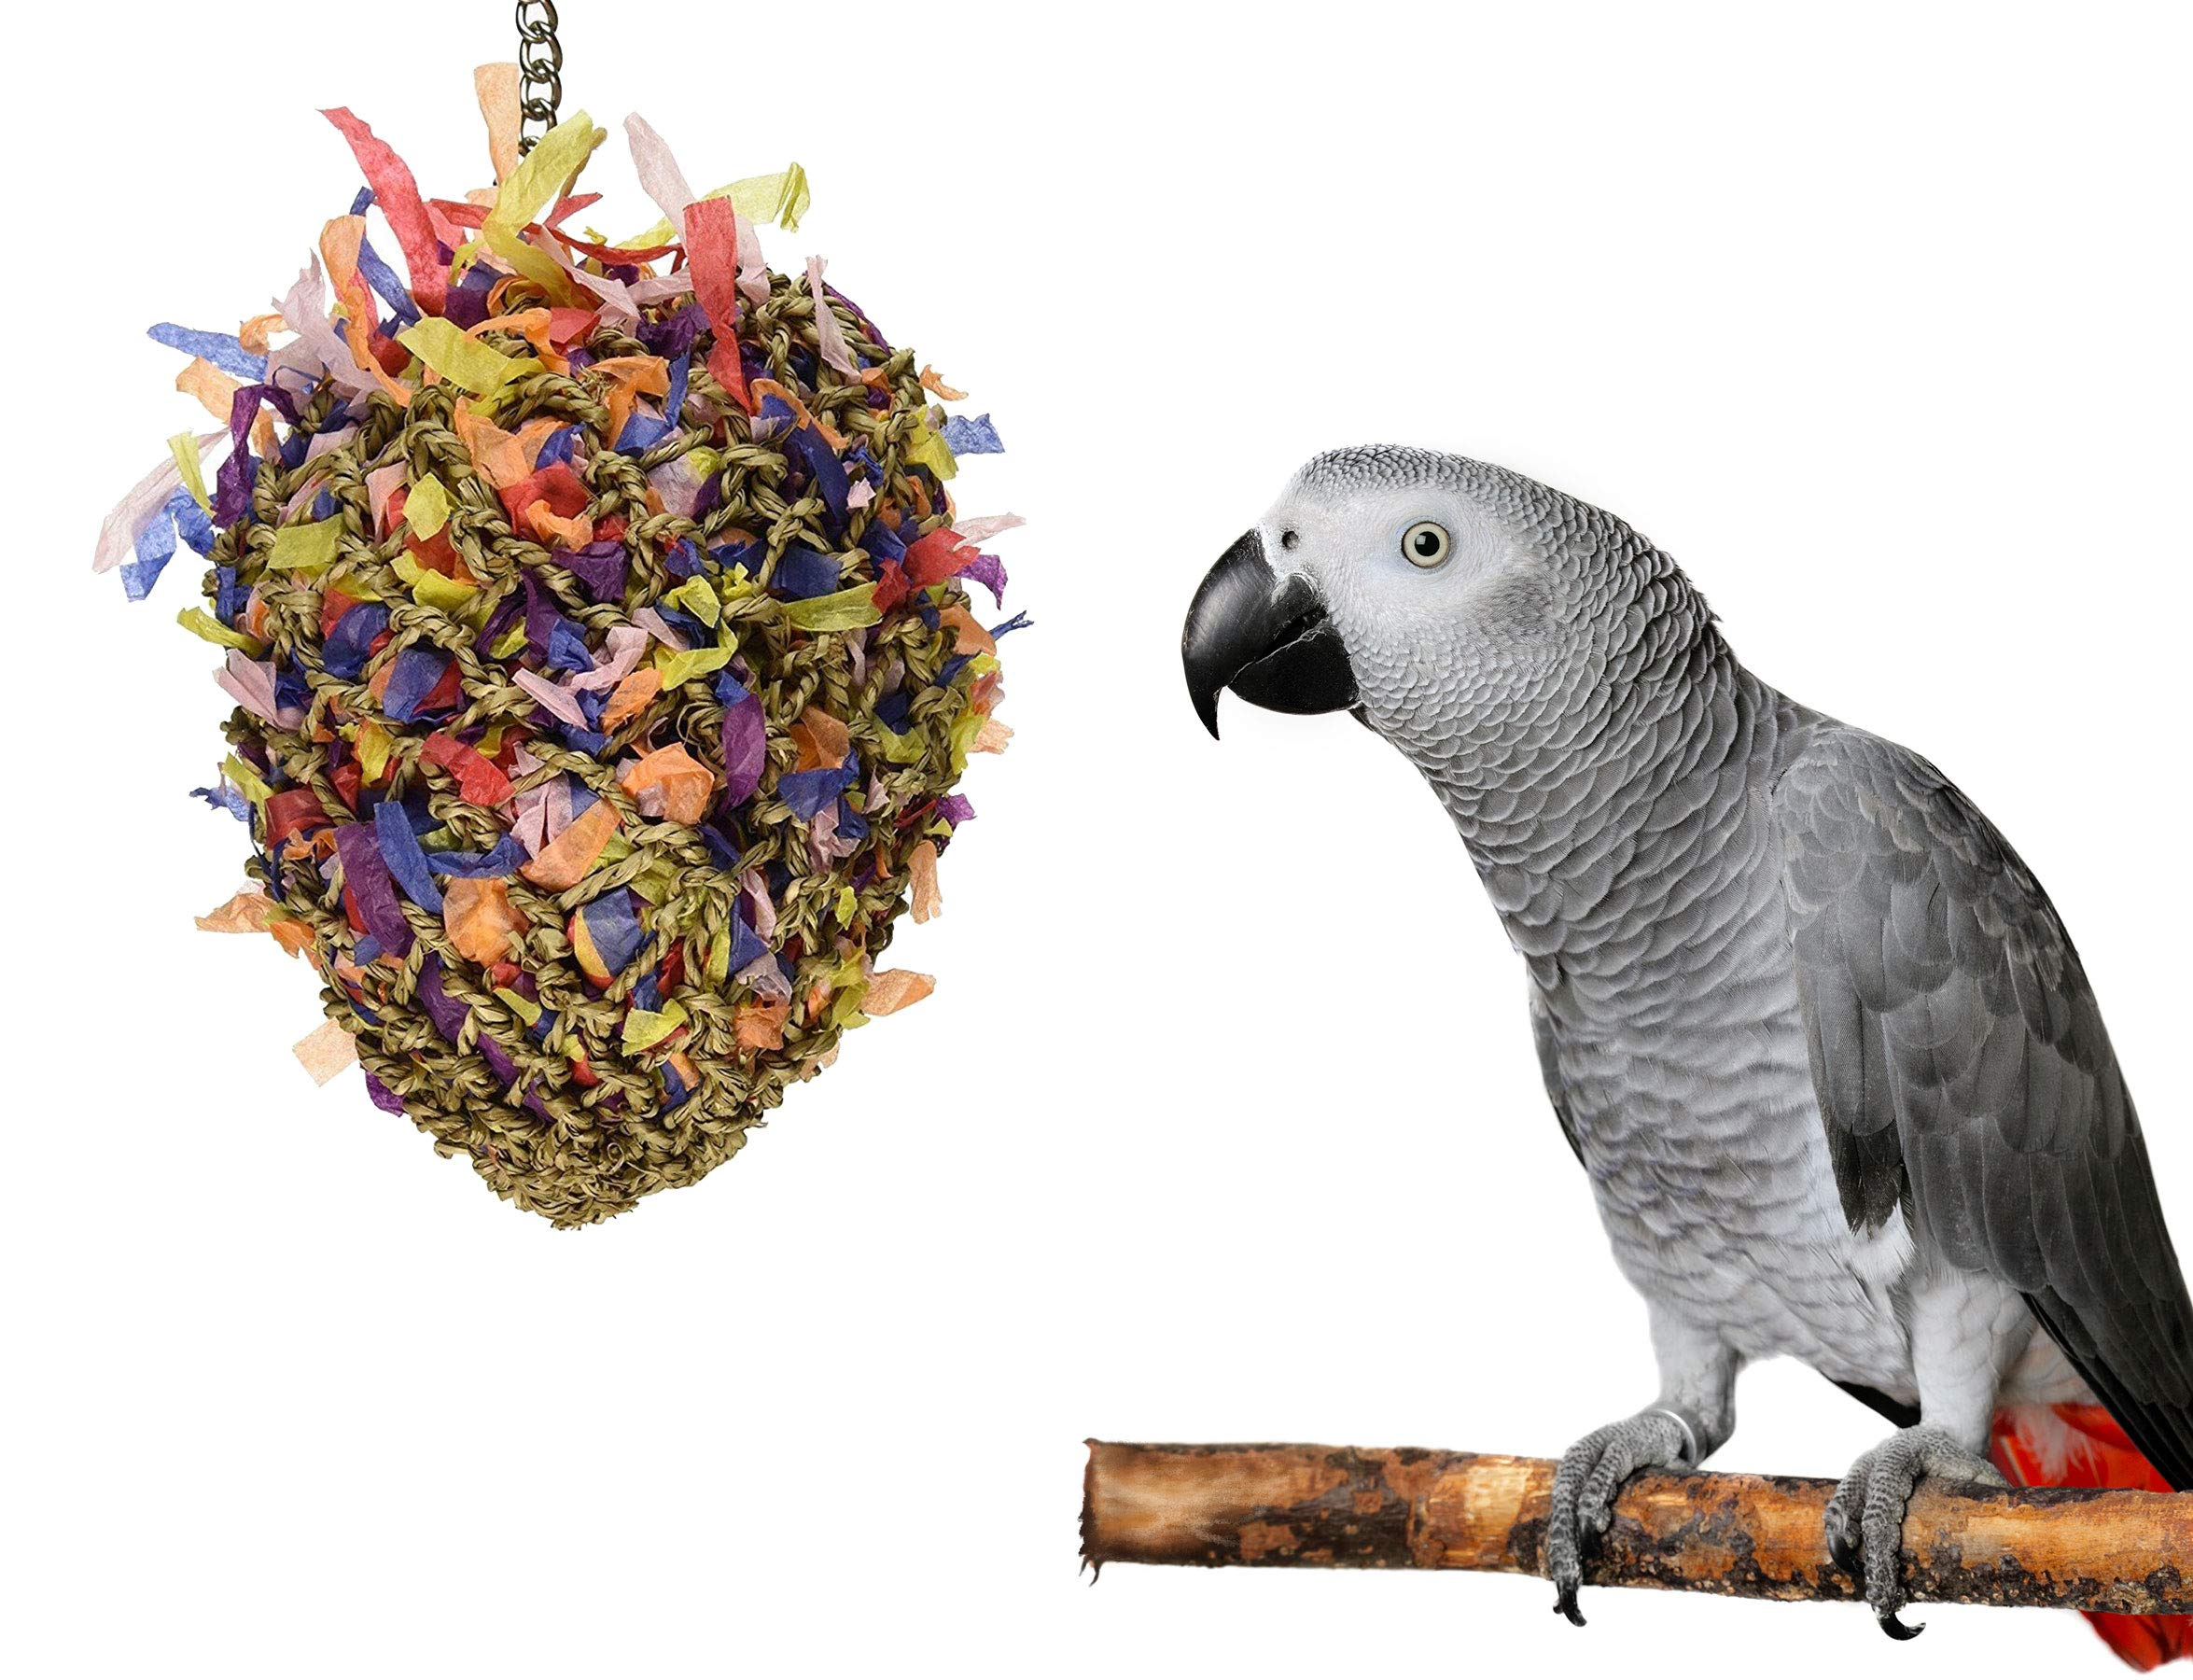 Sweet Feet and Beak Bird Toys Super Shredder Ball - Keeps Your Pet Bird Busy for Weeks Foraging for Hidden Treasures - Non-Toxic - Easy to Install - for Large Sized Birds - 7 inch Diameter by Sweet Feet and Beak